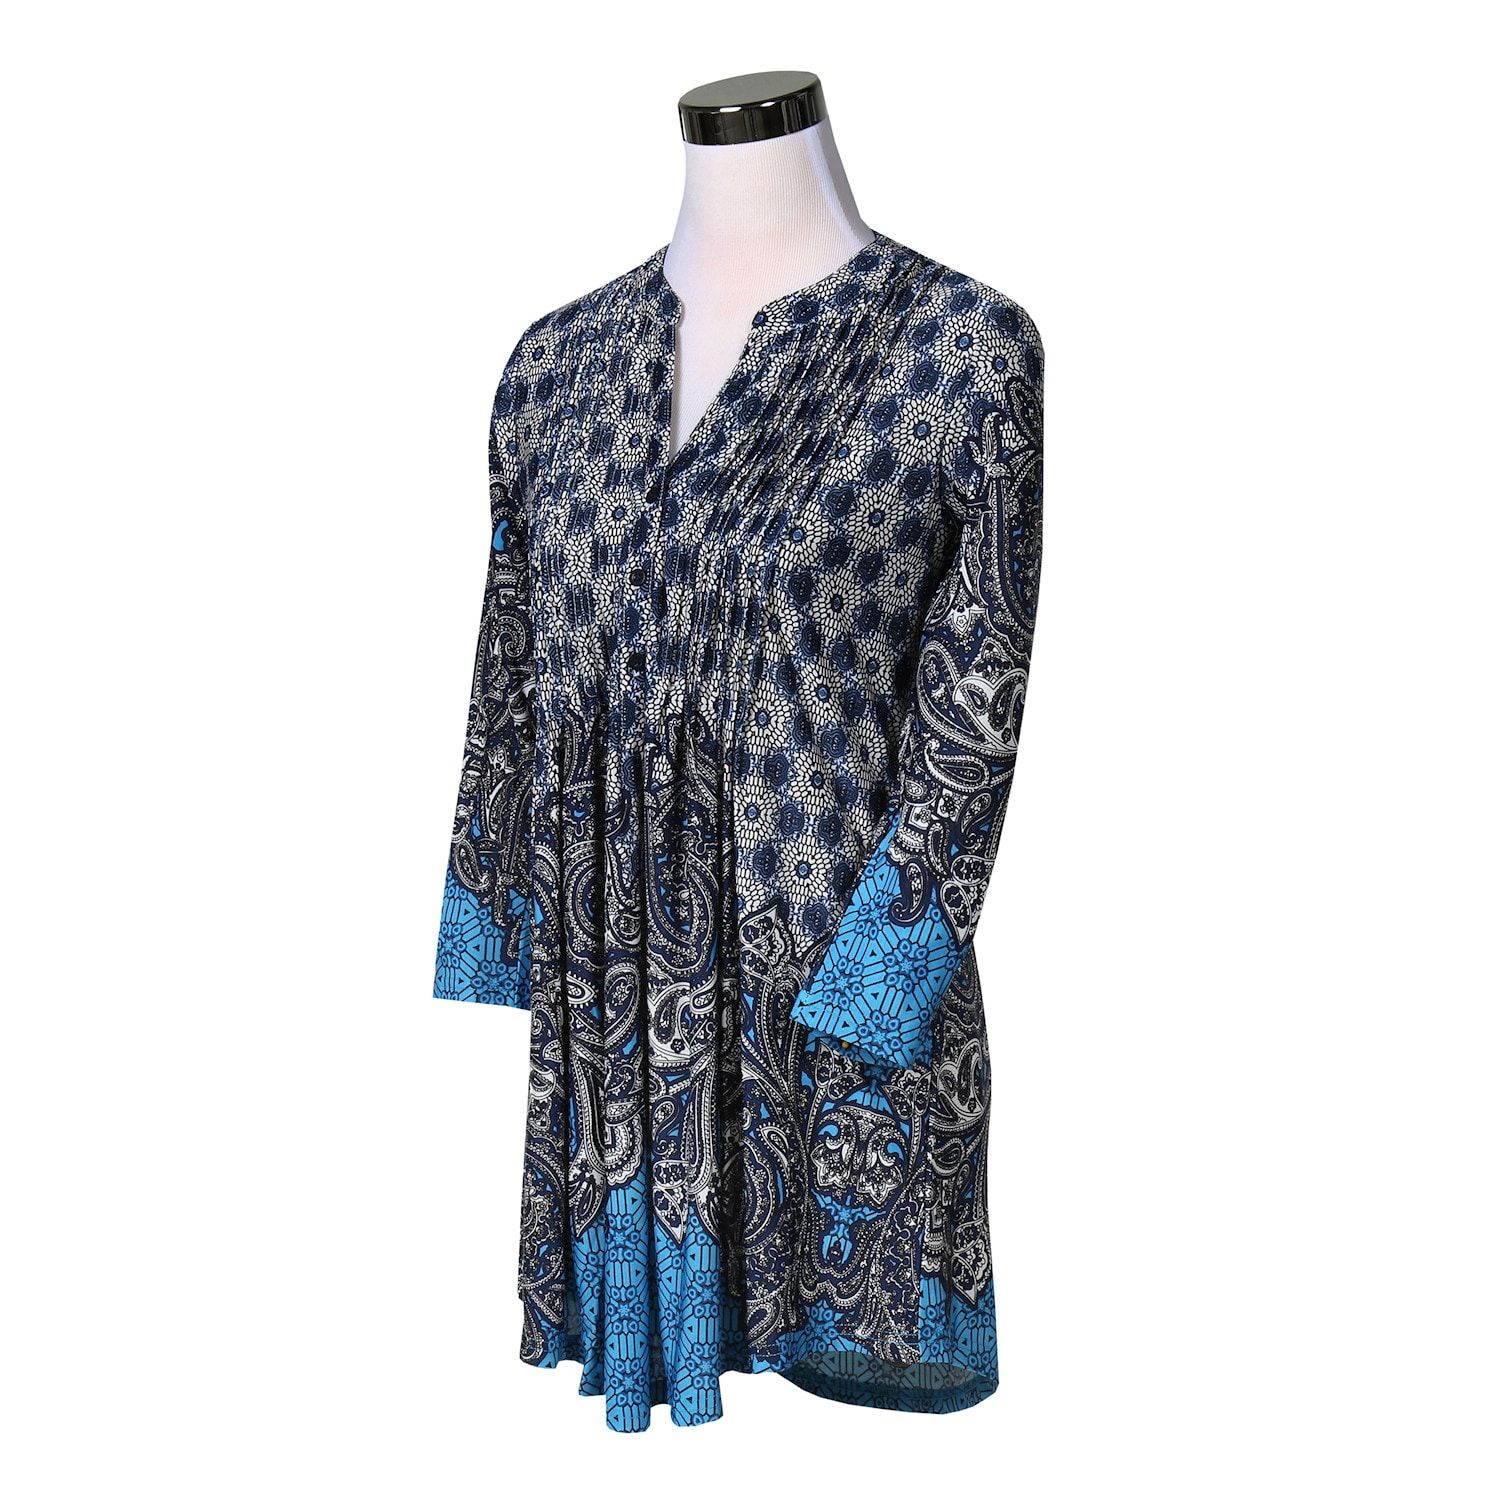 Women-039-s-Pleated-Paisley-Tunic-Top-3-4-Sleeve-Blouse-Ivory-Red-Turquoise-Navy thumbnail 13